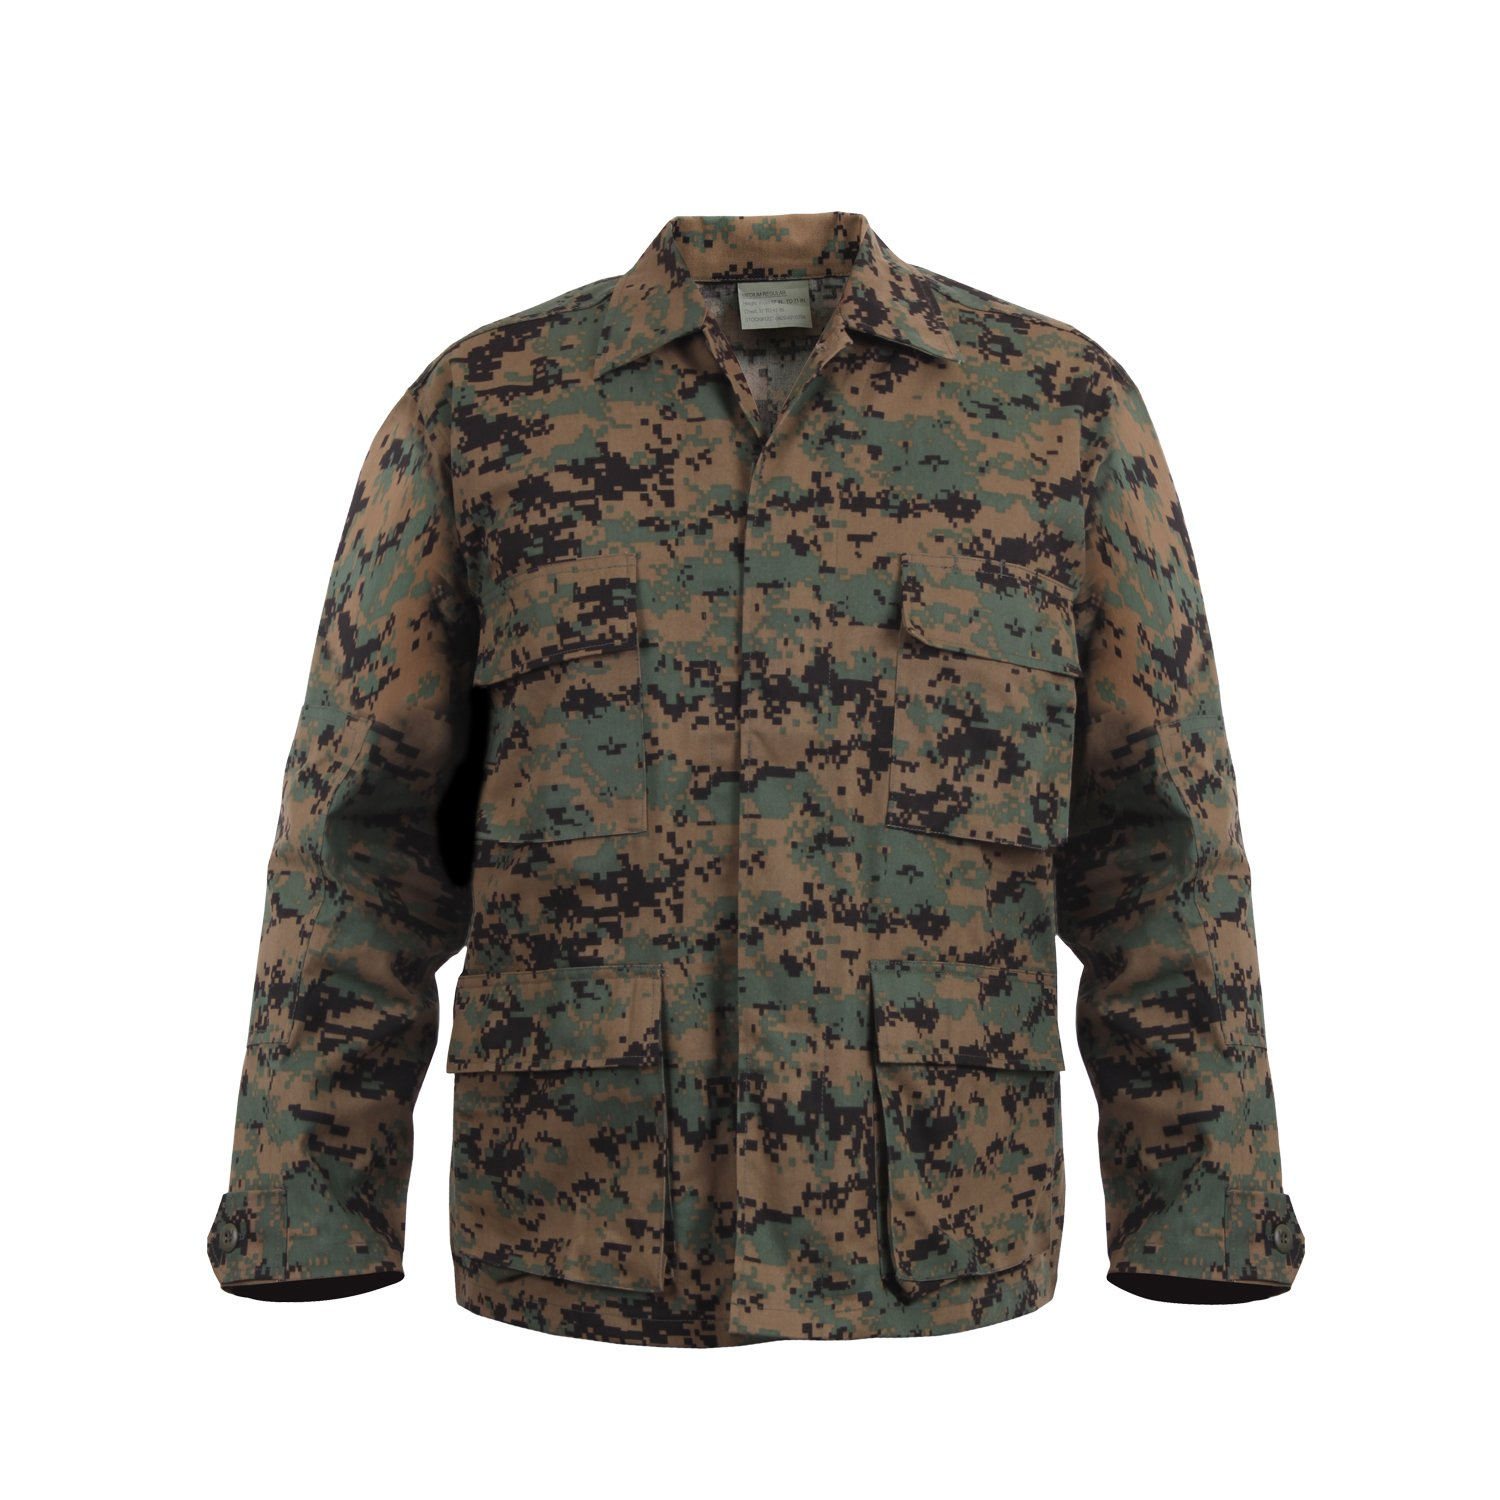 Rothco Bdu Shirt - Woodland Digital Camo RSR Group Inc 613902869035